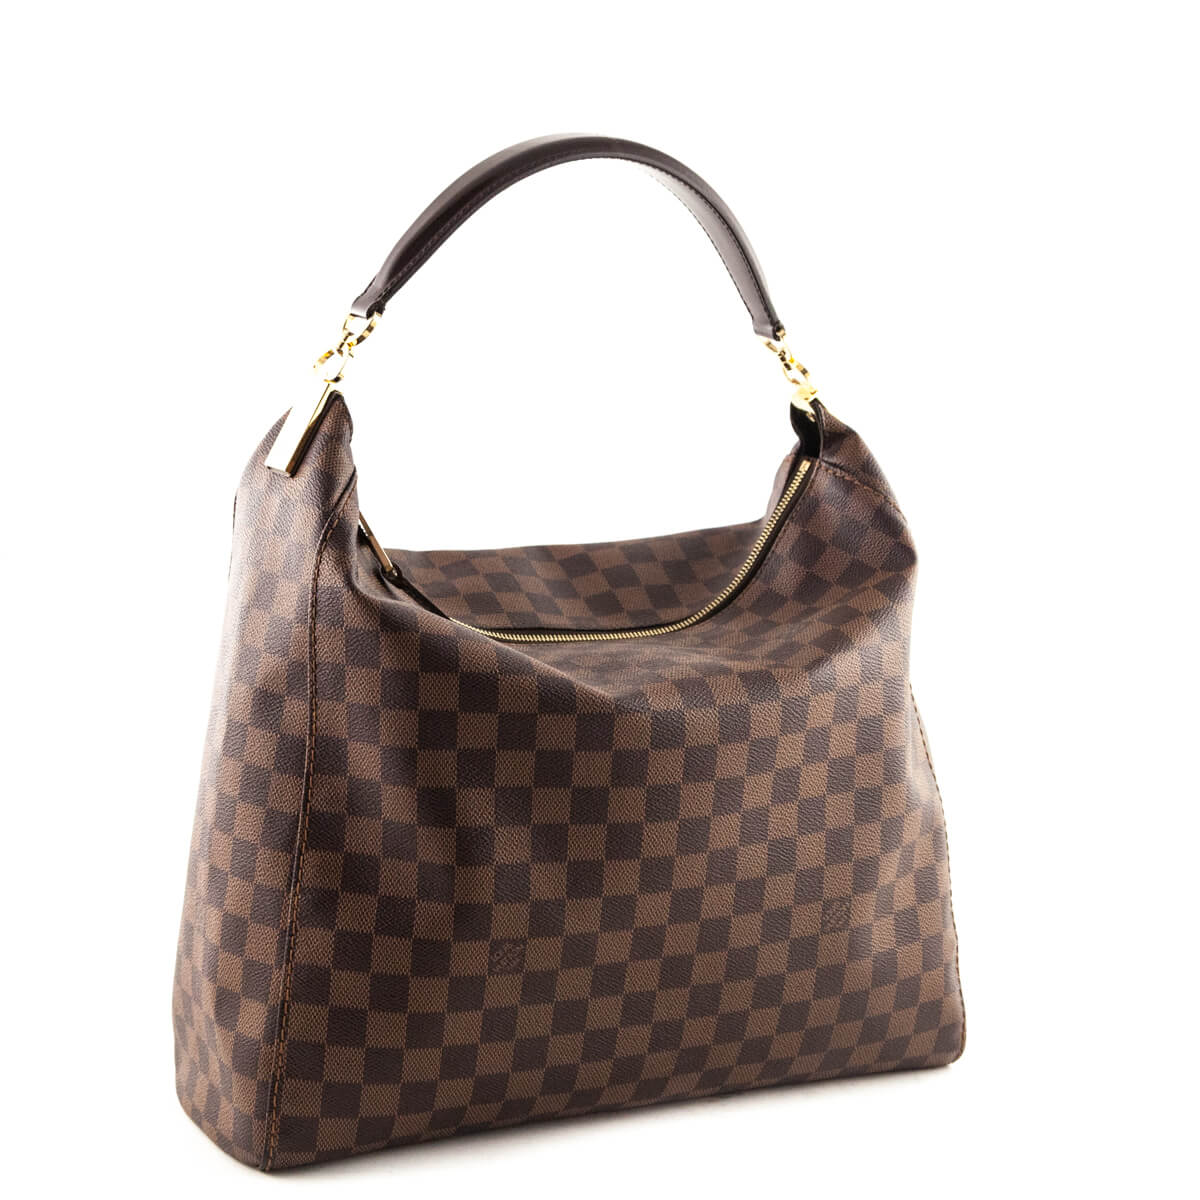 b81fbcb79eea ... Louis Vuitton Damier Ebene Portobello GM - LOVE that BAG - Preowned  Authentic Designer Handbags ...